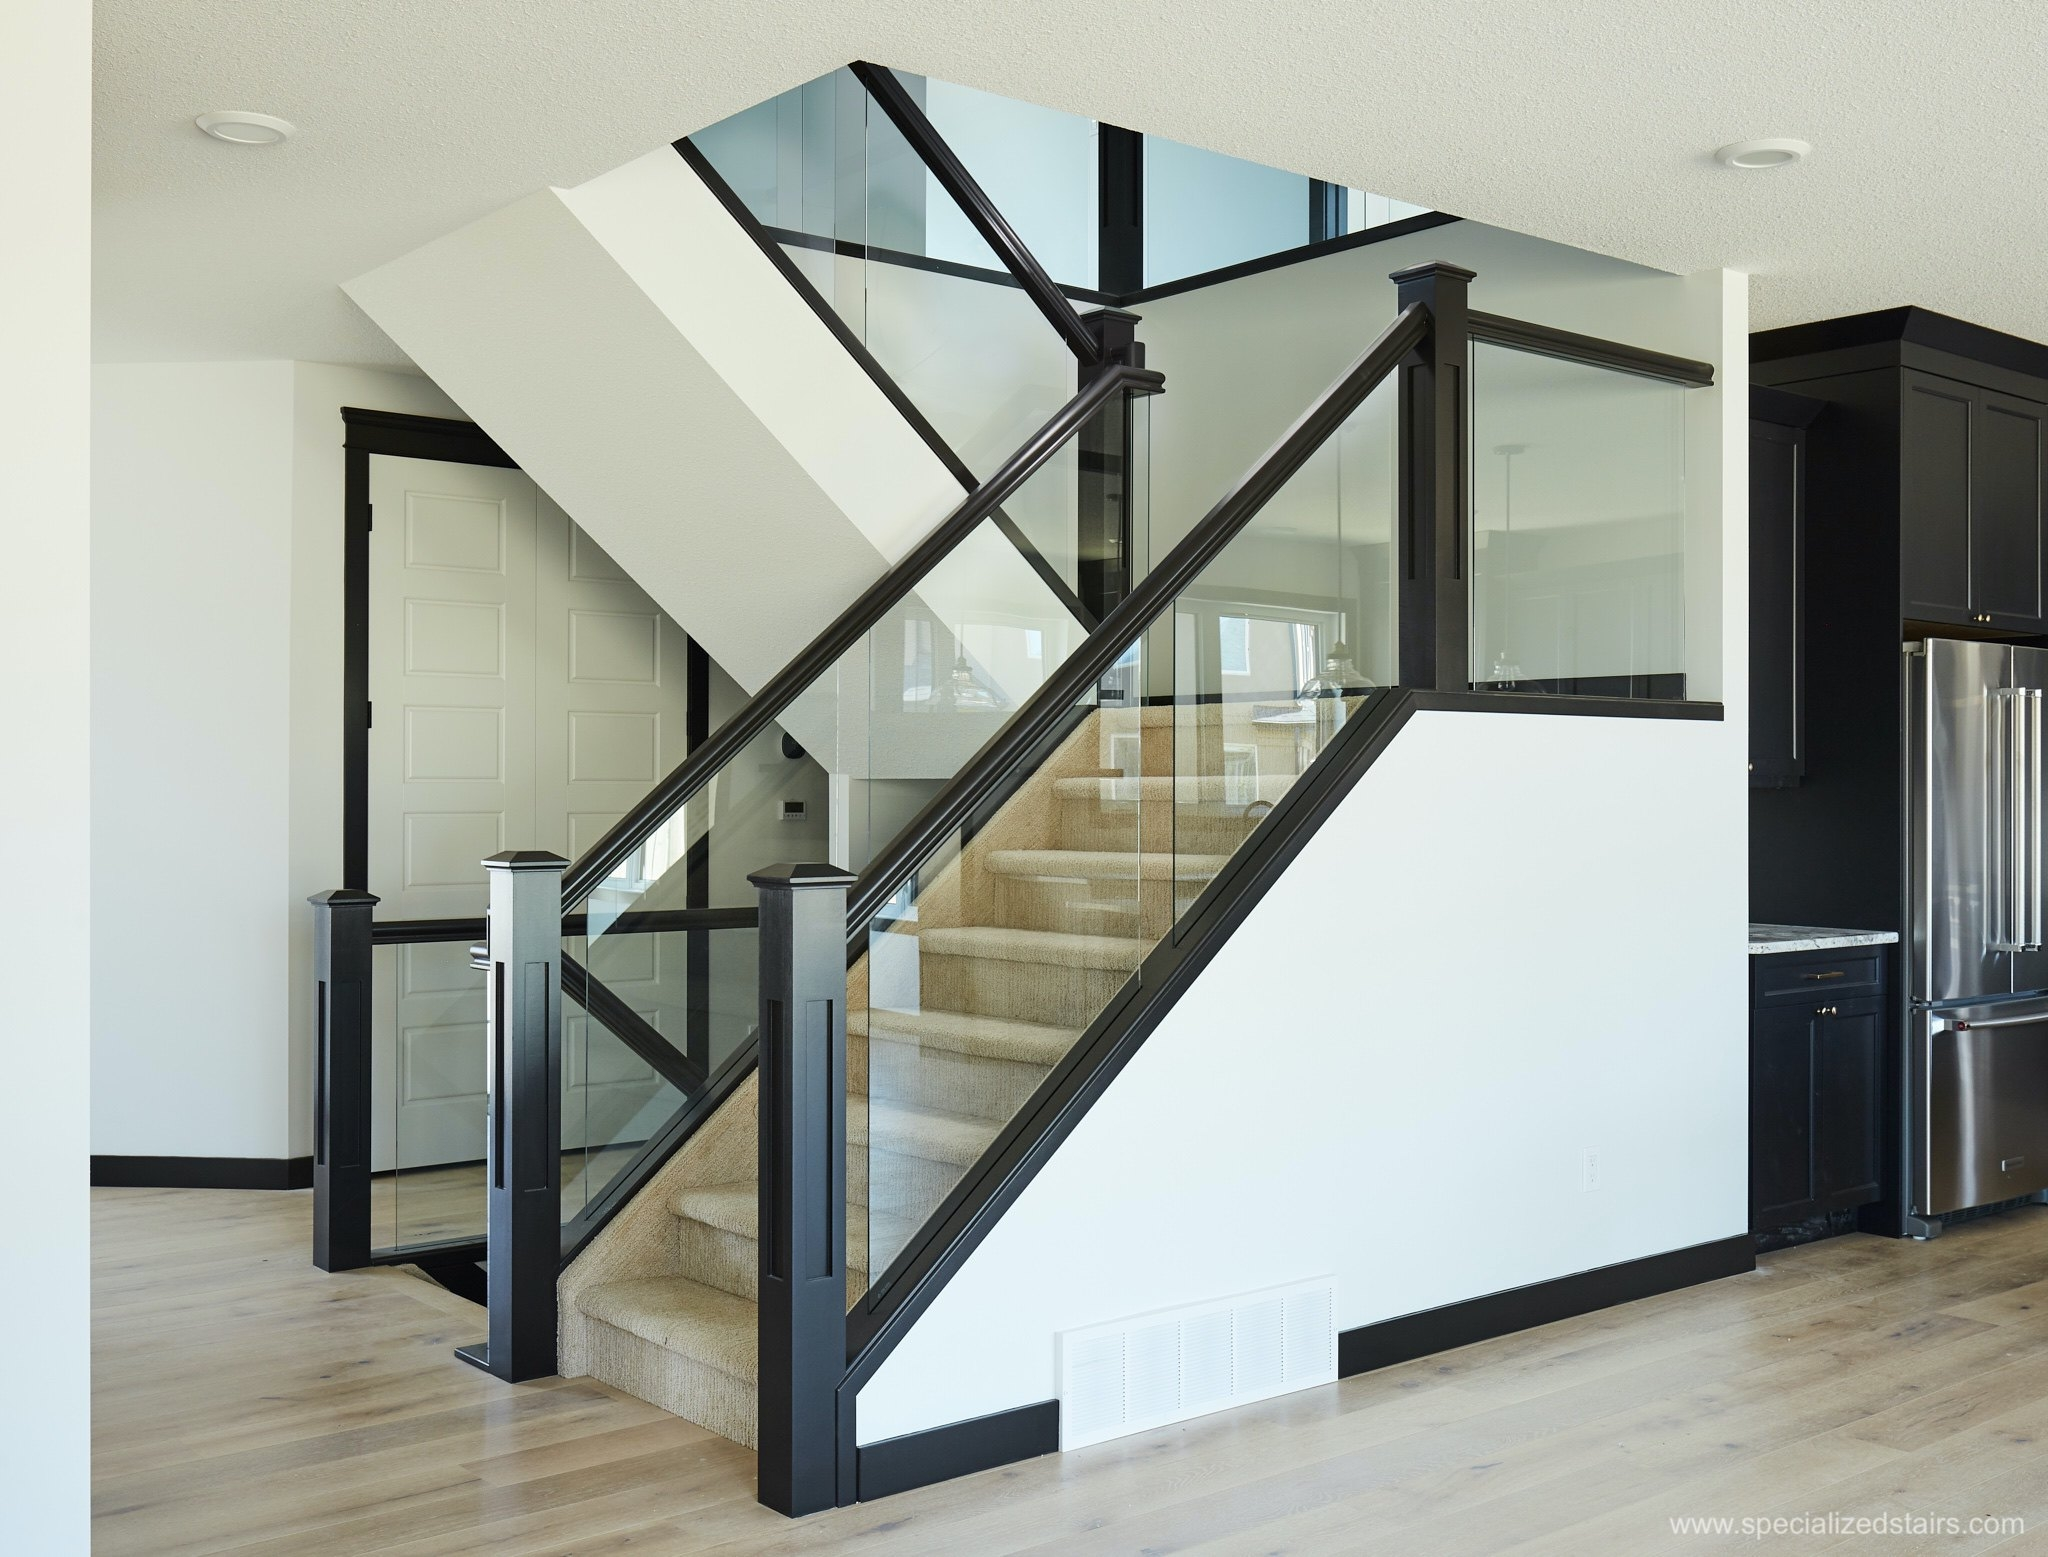 5 Things You Need To Know About Glass Railing Specialized Stair   Glass Panel Stair Railing   Toughened   Square   Framed Glass   Staircase   Banister